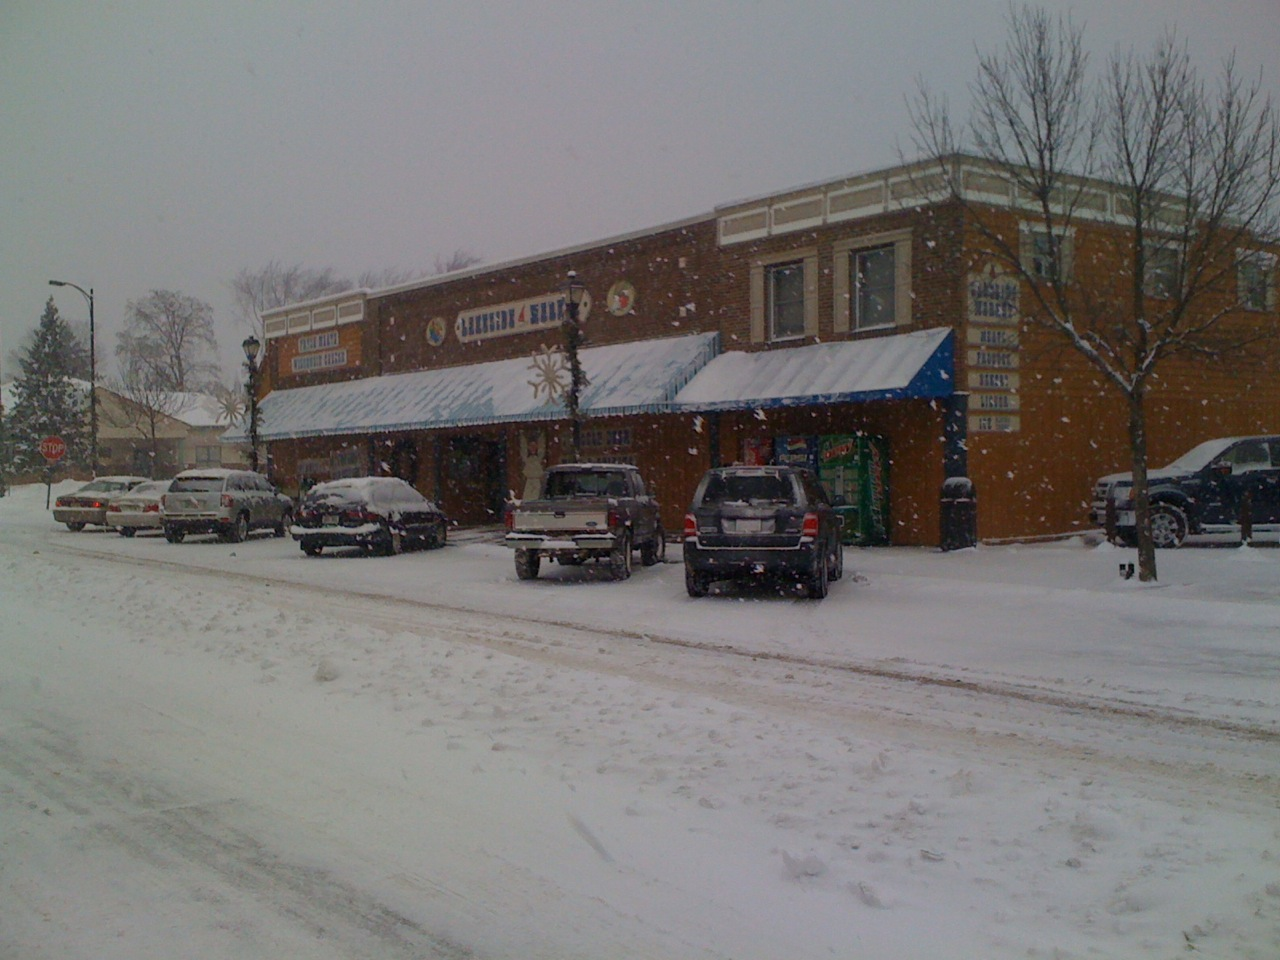 The town grocery store on main street